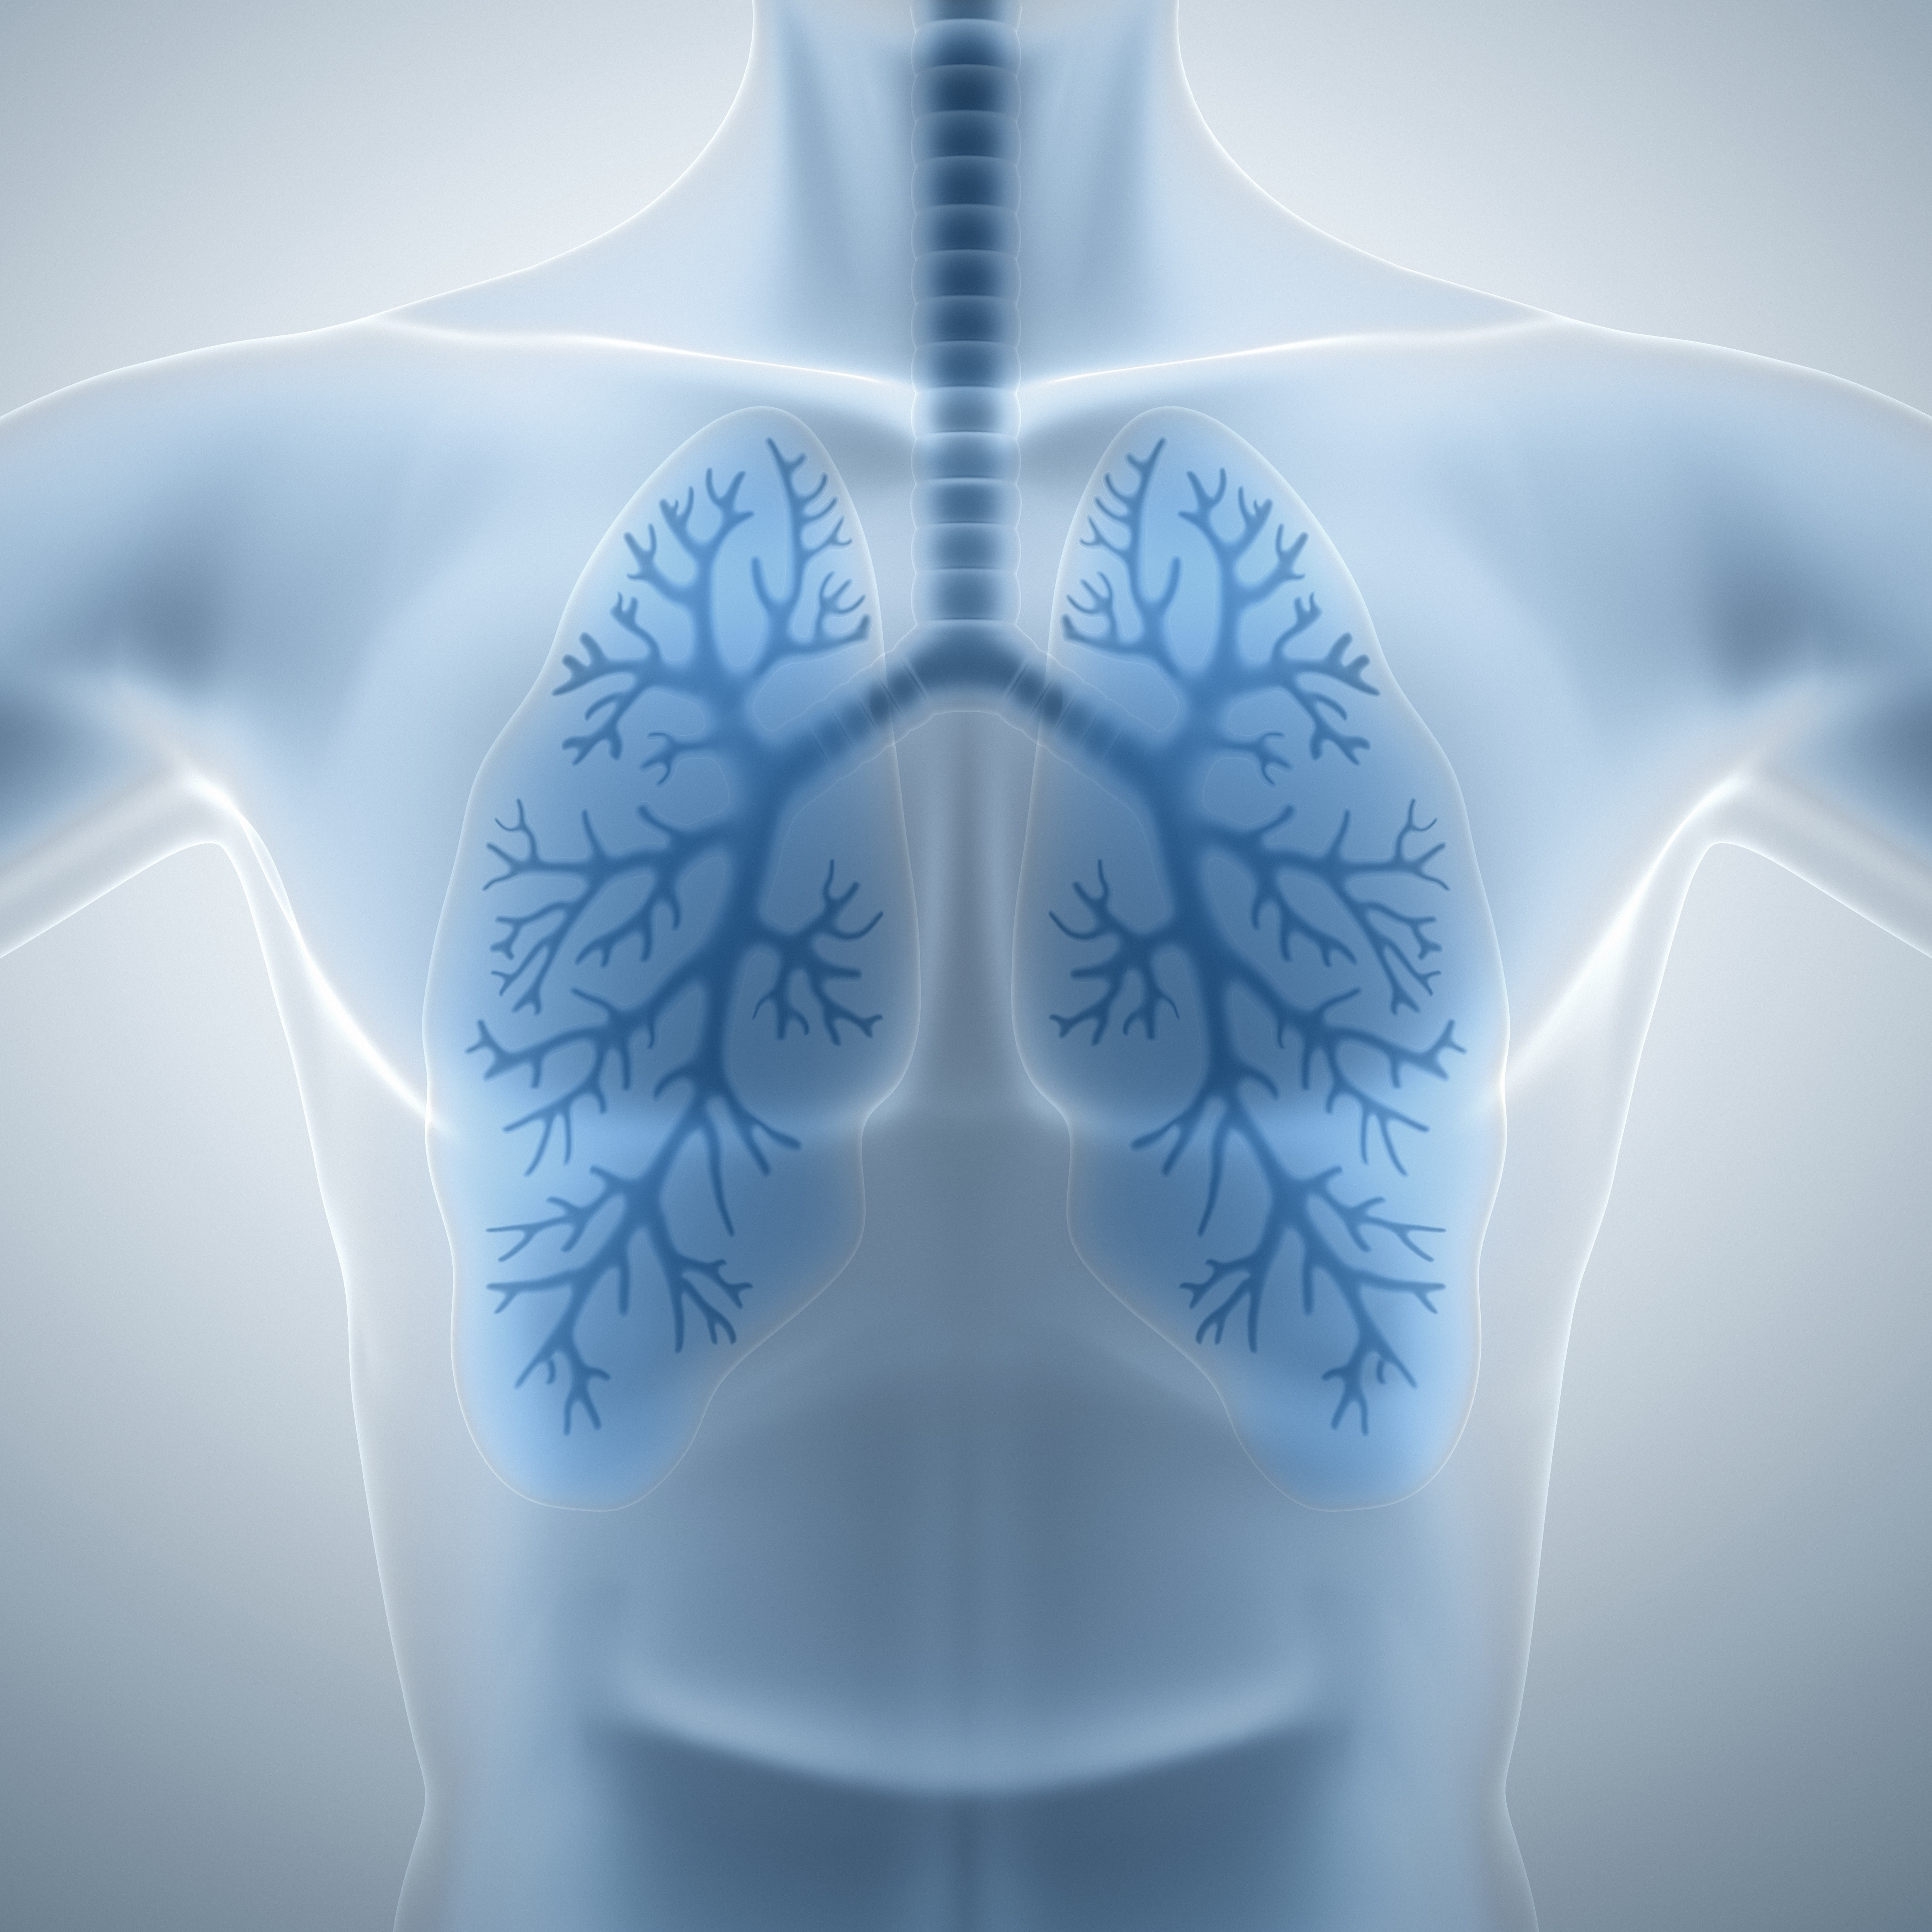 RestorGenex Presents Results of Experimental Idiopathic Pulmonary Fibrosis Therapy